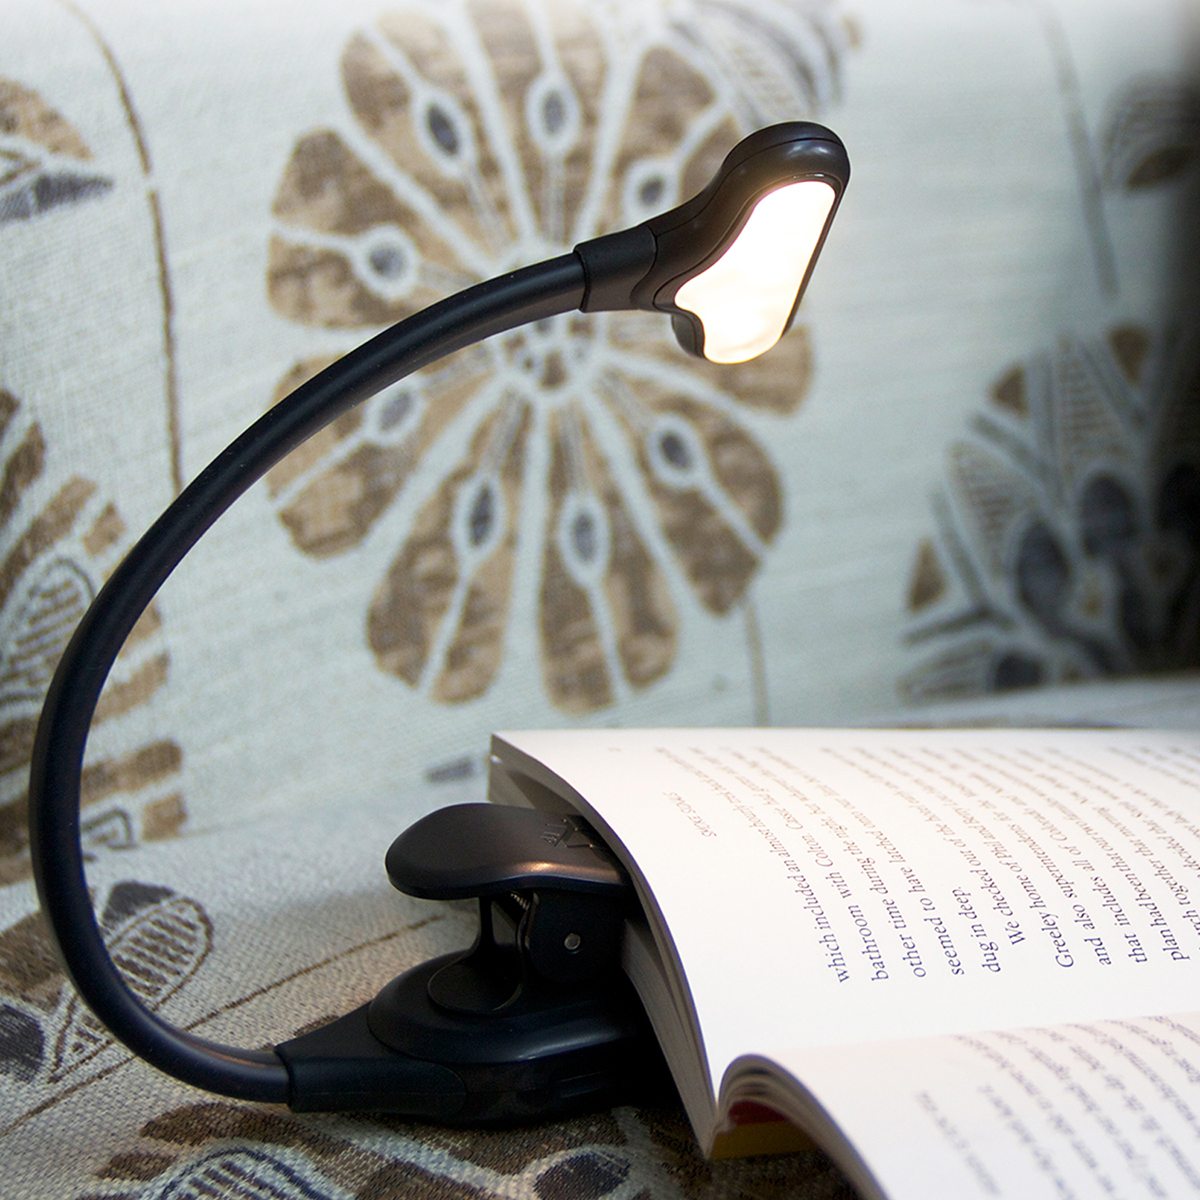 NuFlex Rechargeable Booklight in action